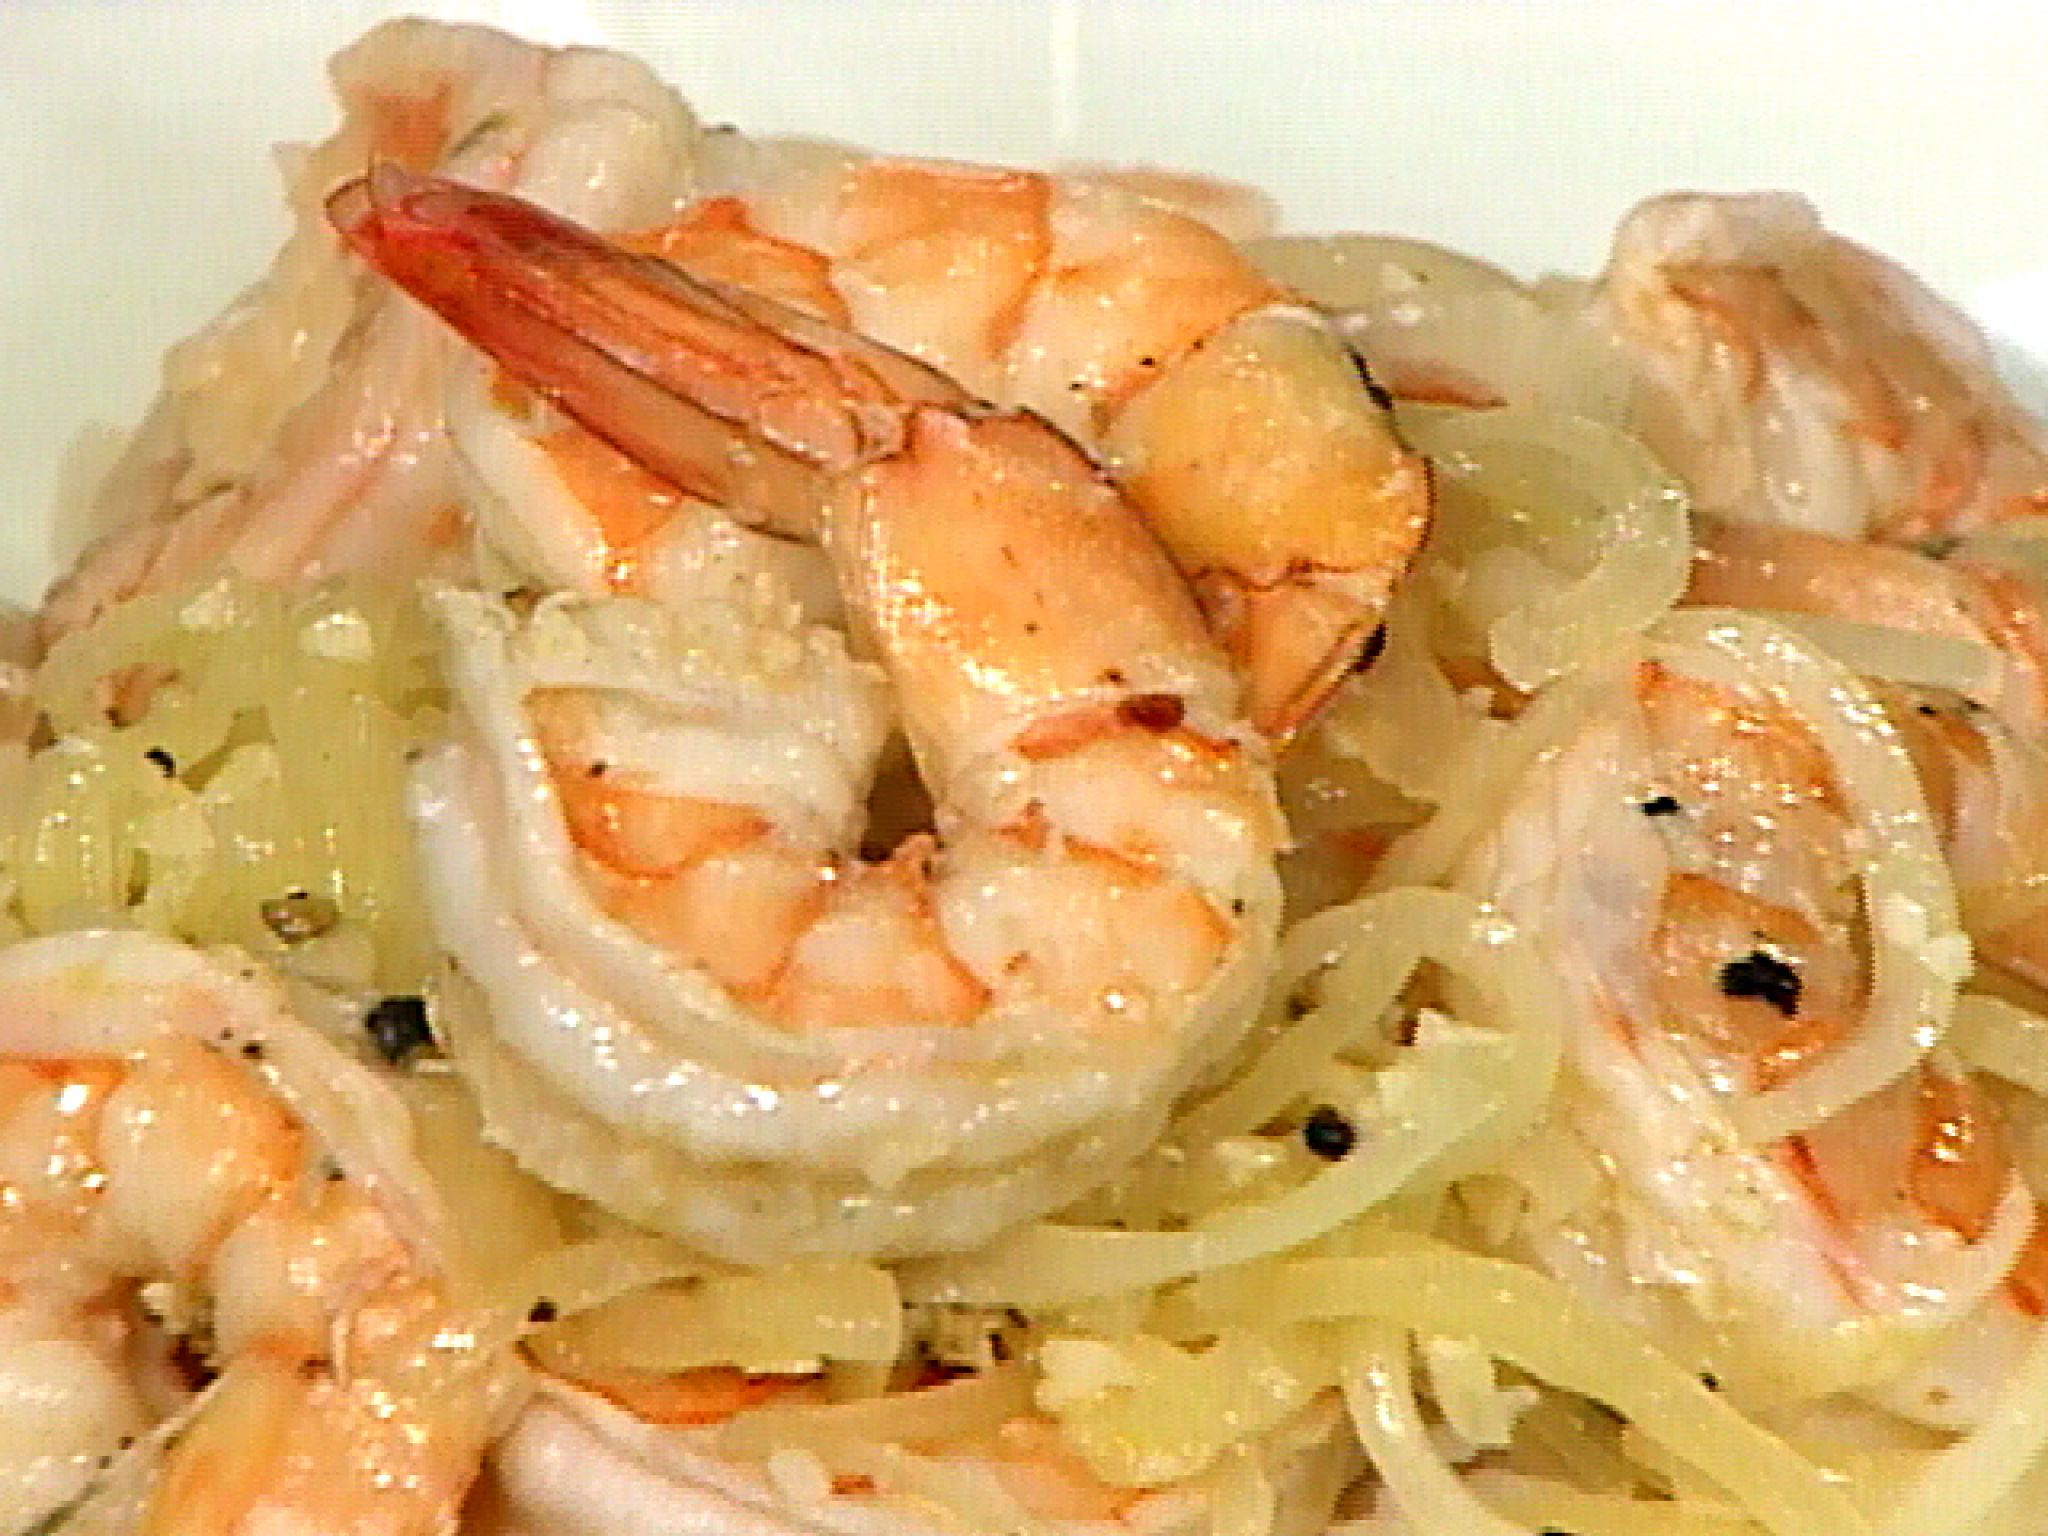 New orleans style italian salad recipe scampi recipe scampi and new orleans style italian salad shrimp scampi recipesseafood forumfinder Image collections